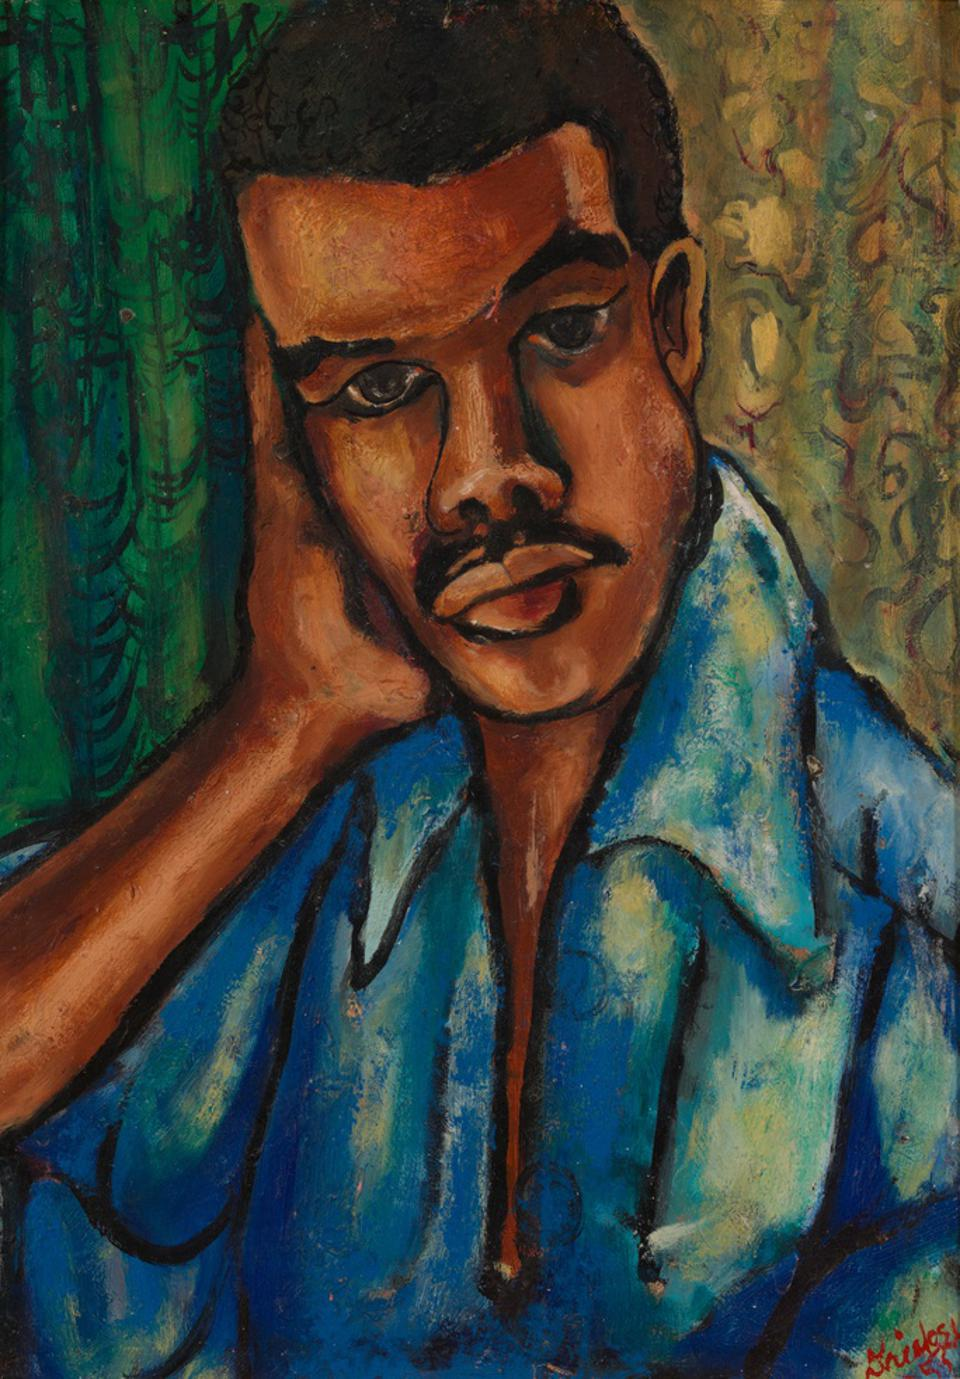 David C. Driskell (American, 1931–2020), 'Self-Portrait,' 1953, oil on board, collection of the Estate of David C. Driskell, Maryland. © ESTATE OF DAVID C. DRISKELL. COURTESY DC MOORE GALLERY, NEW YORK. PHOTOGRAPH BY LUC DEMERS.